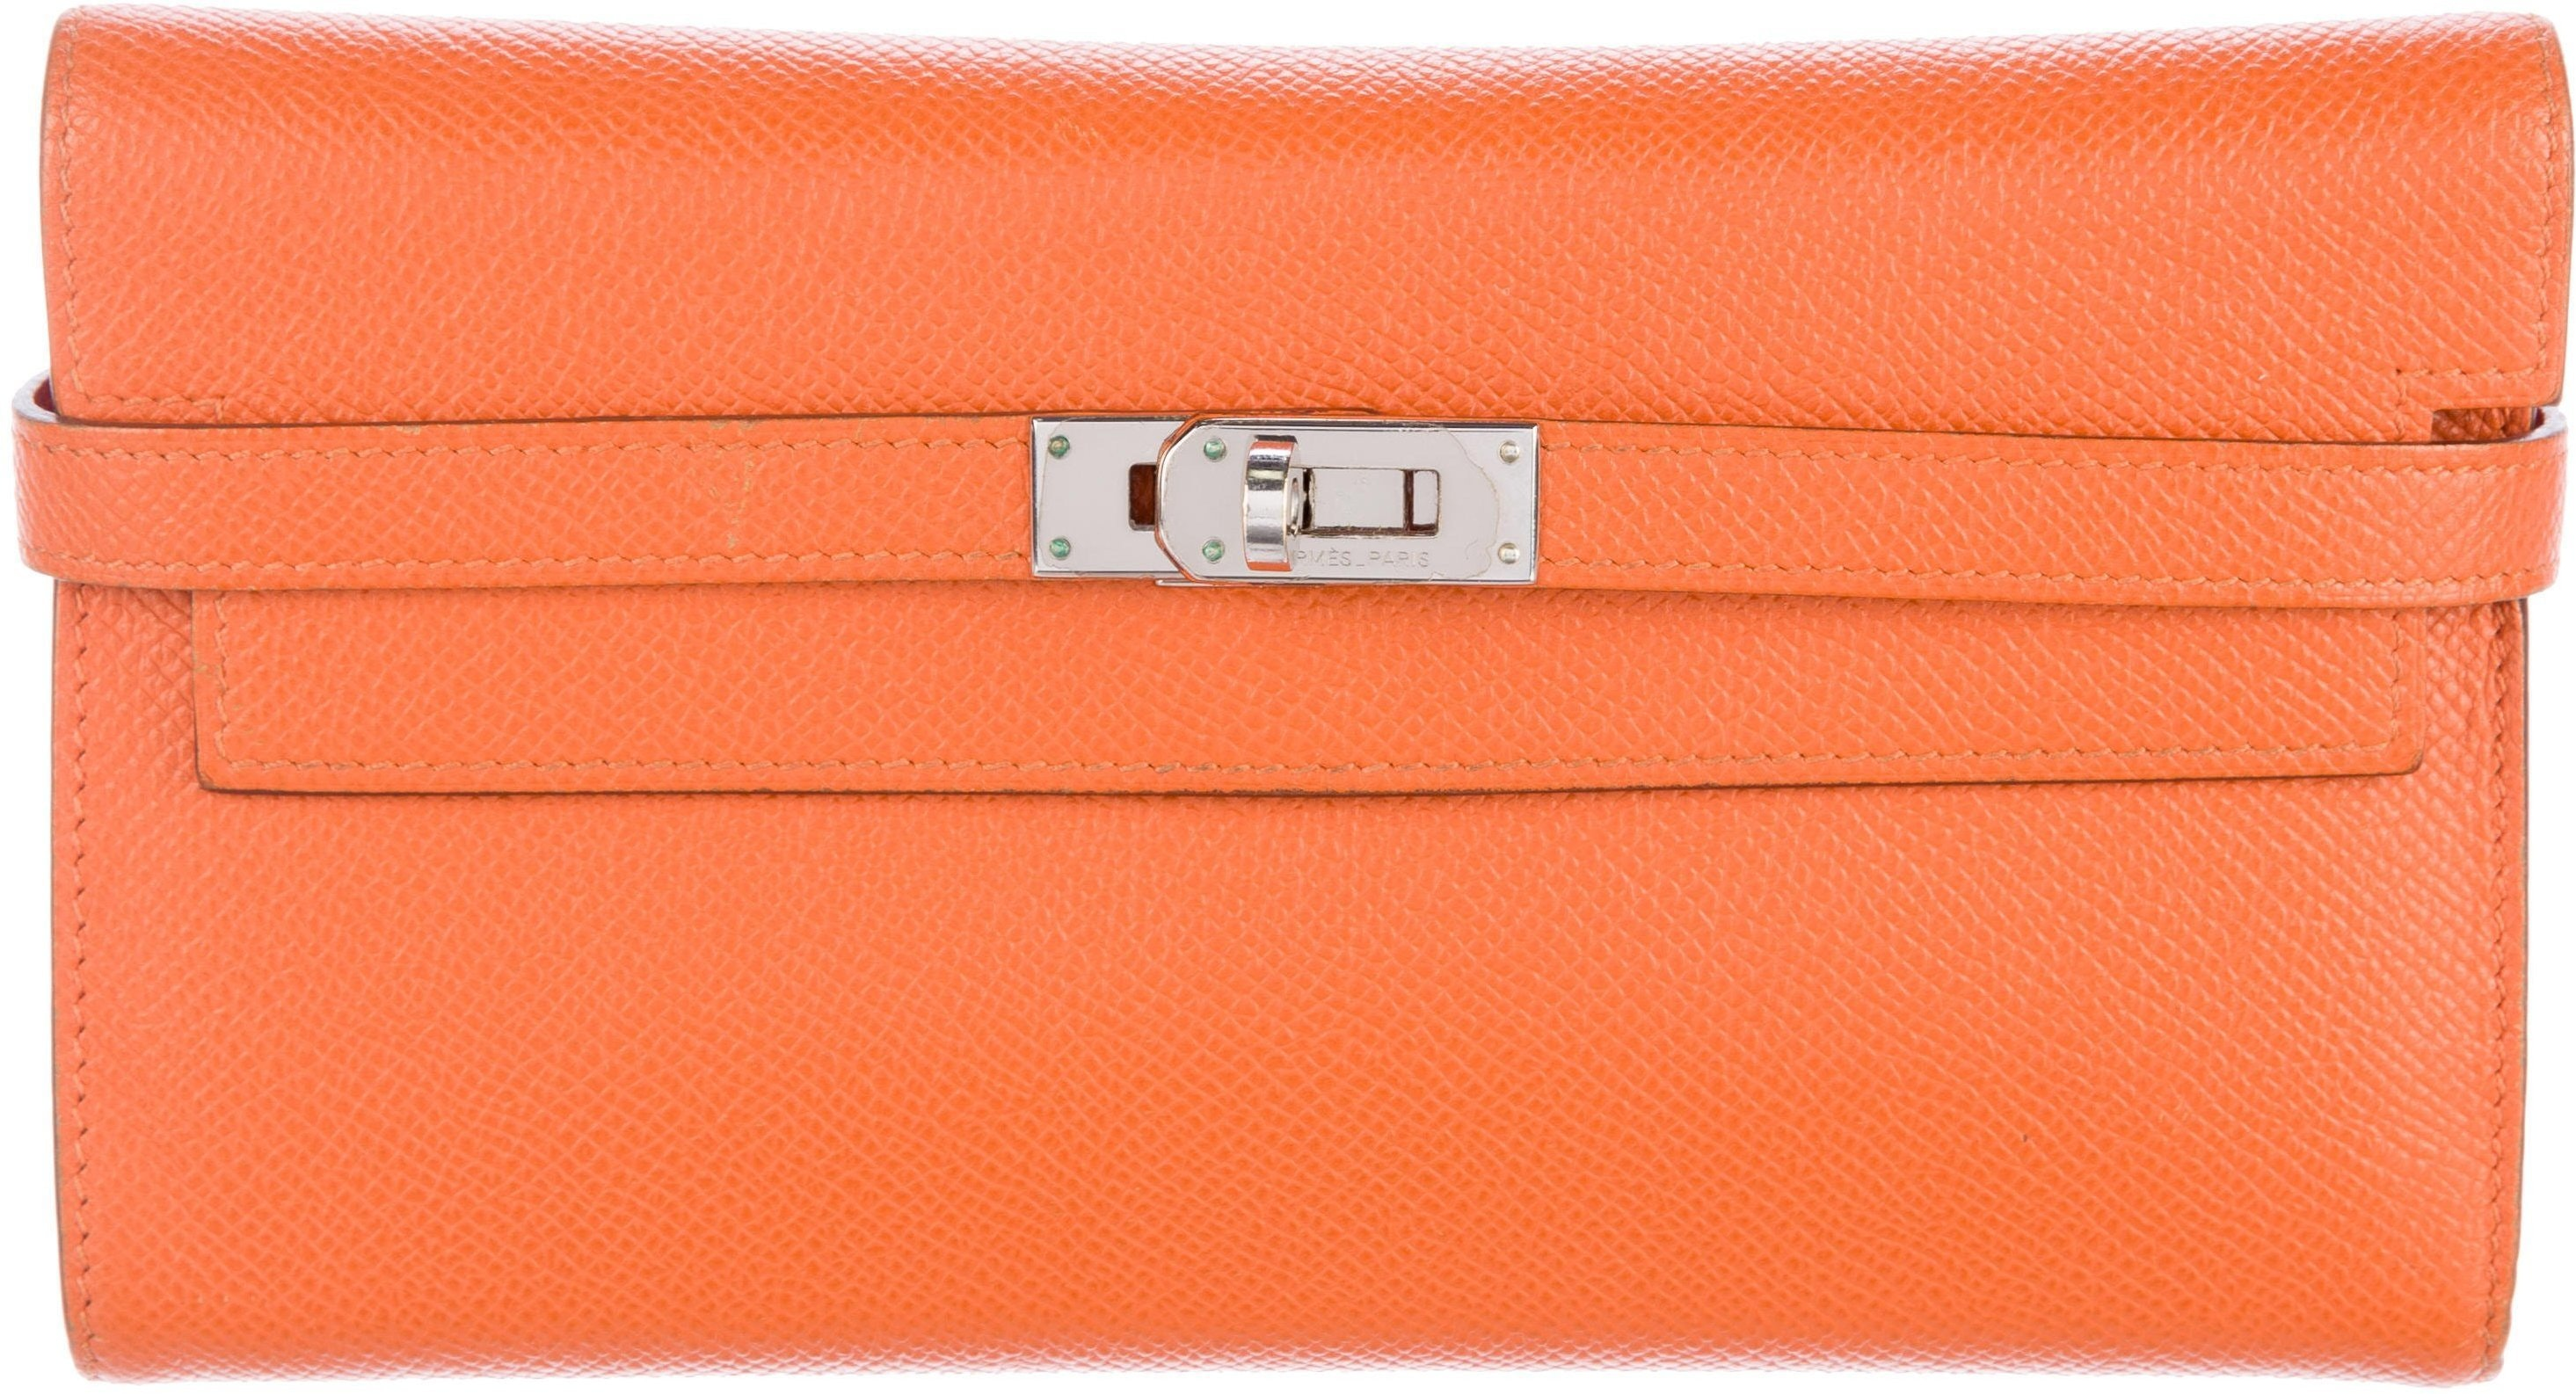 Hermes Kelly Classic Wallet Epsom Orange